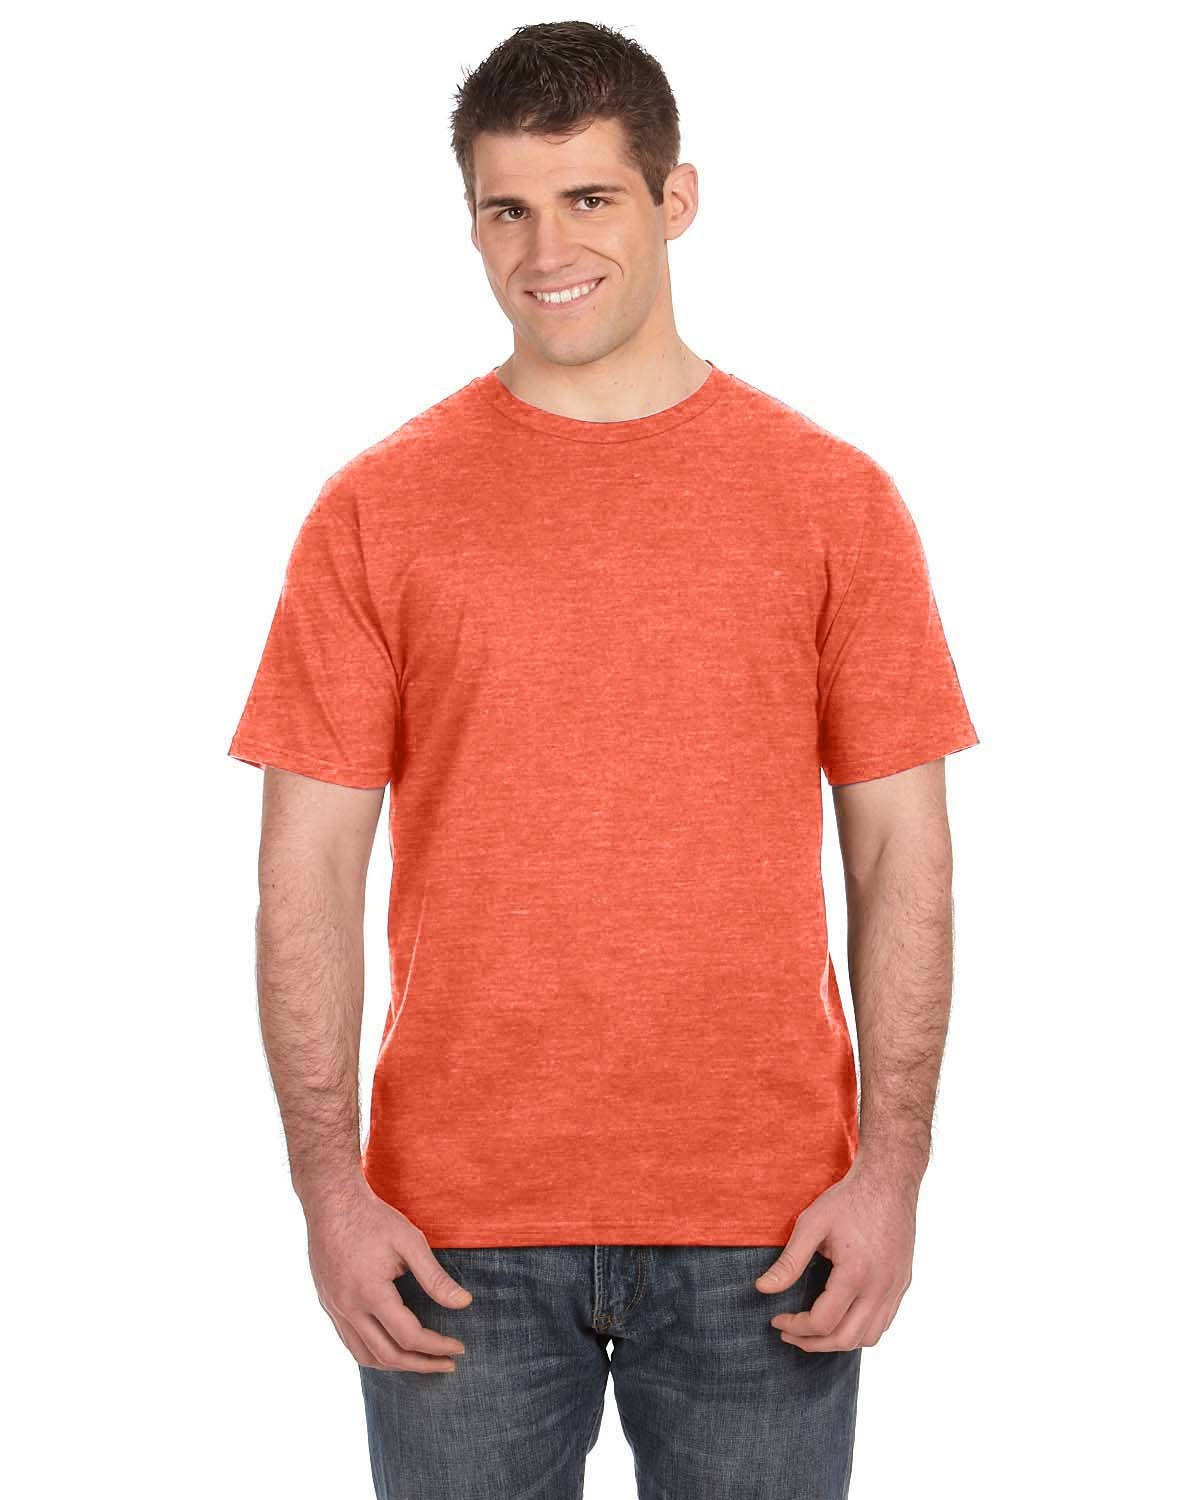 980 Anvil HEATHER ORANGE